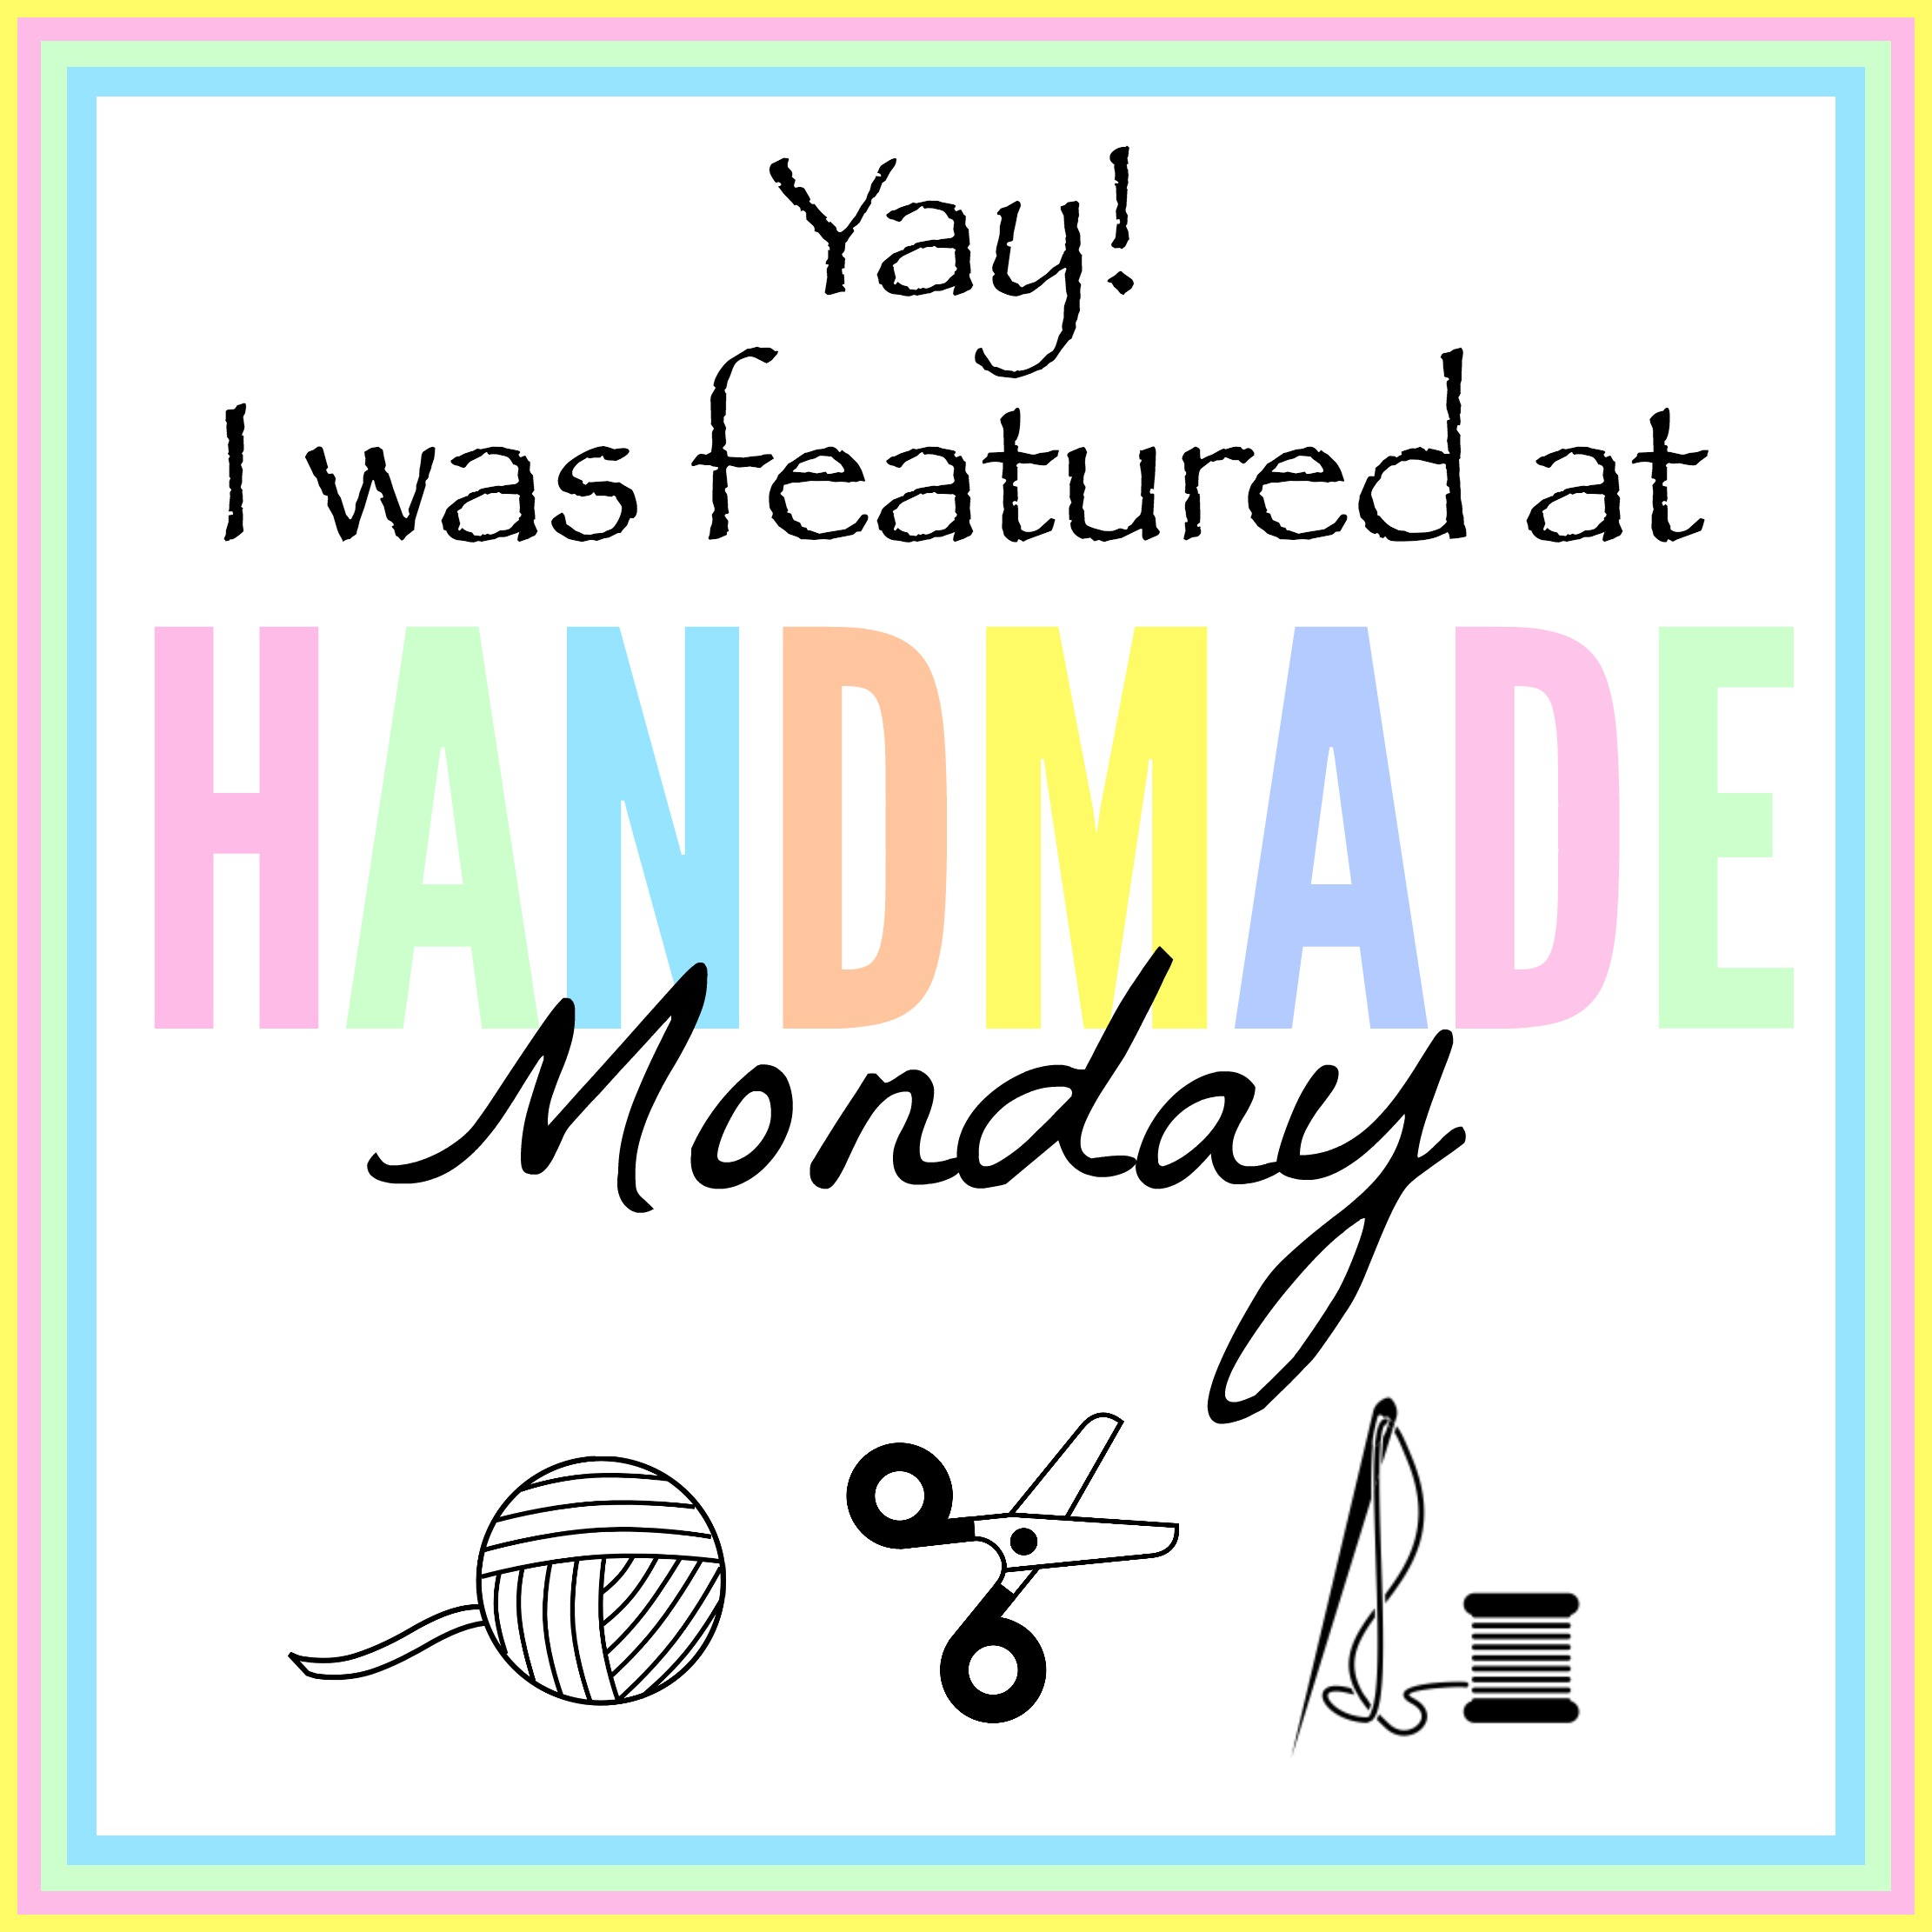 Handmade monday featured.jpg